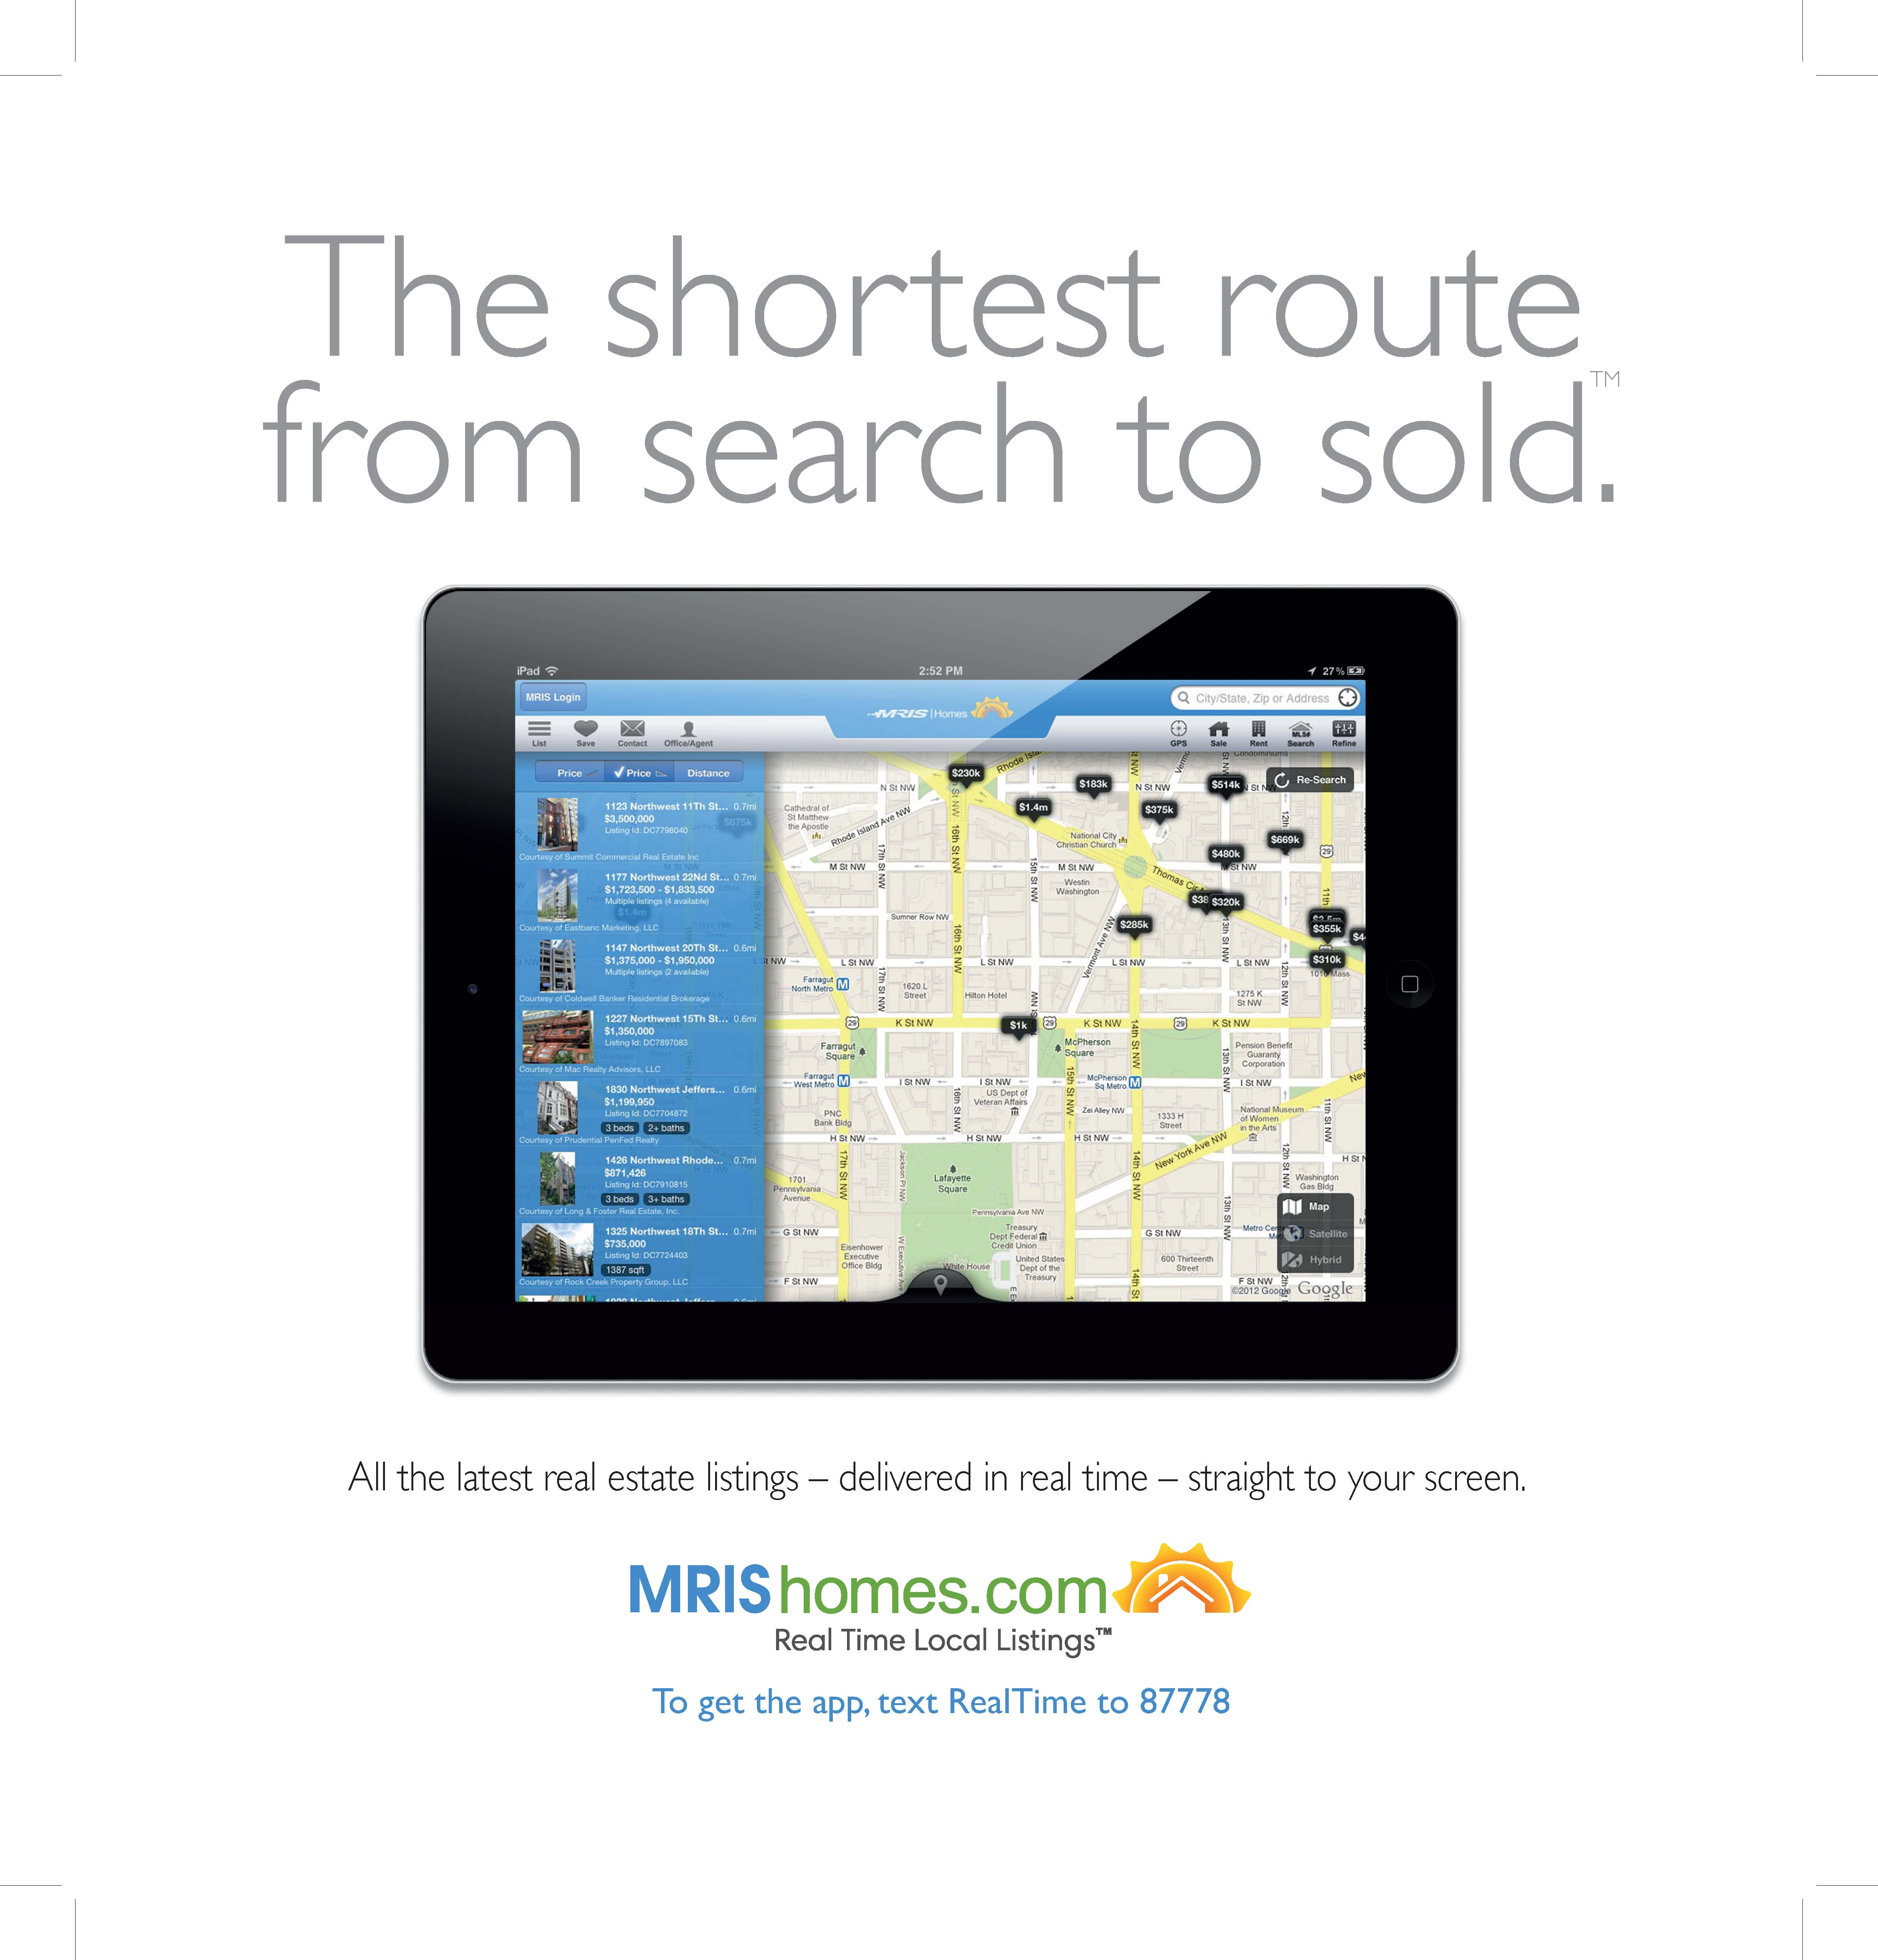 MRIS Brings Real Time Local Real Estate Listings™ With The